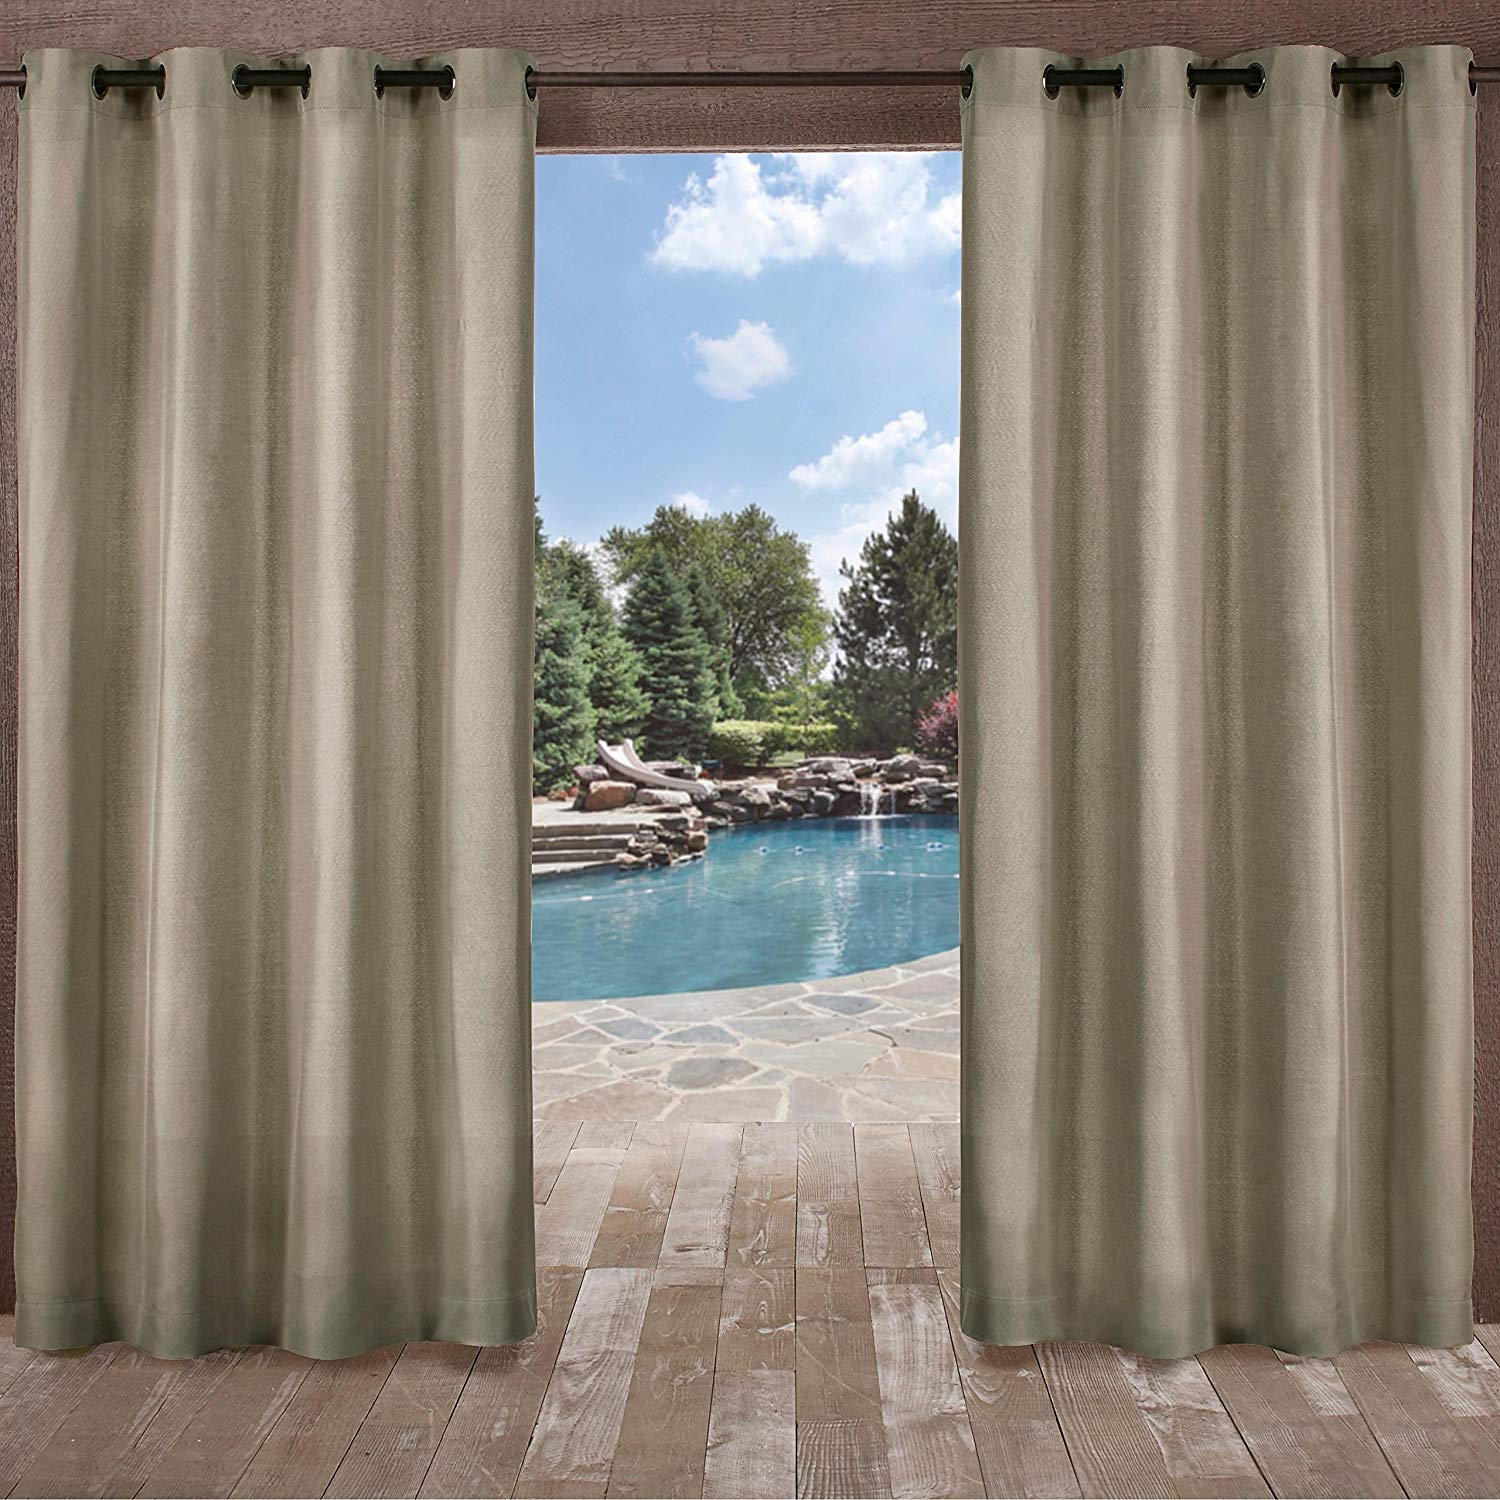 UK4 2 Piece 108 Inch Sand Indoor Outdoor Two Tone Textured Gazebo Curtain, Light Brown Window Treatment Panel Pair, Patio Porch Cabana Dock Grommet Top Pergola Drapes, Casual Contemporary Polyester